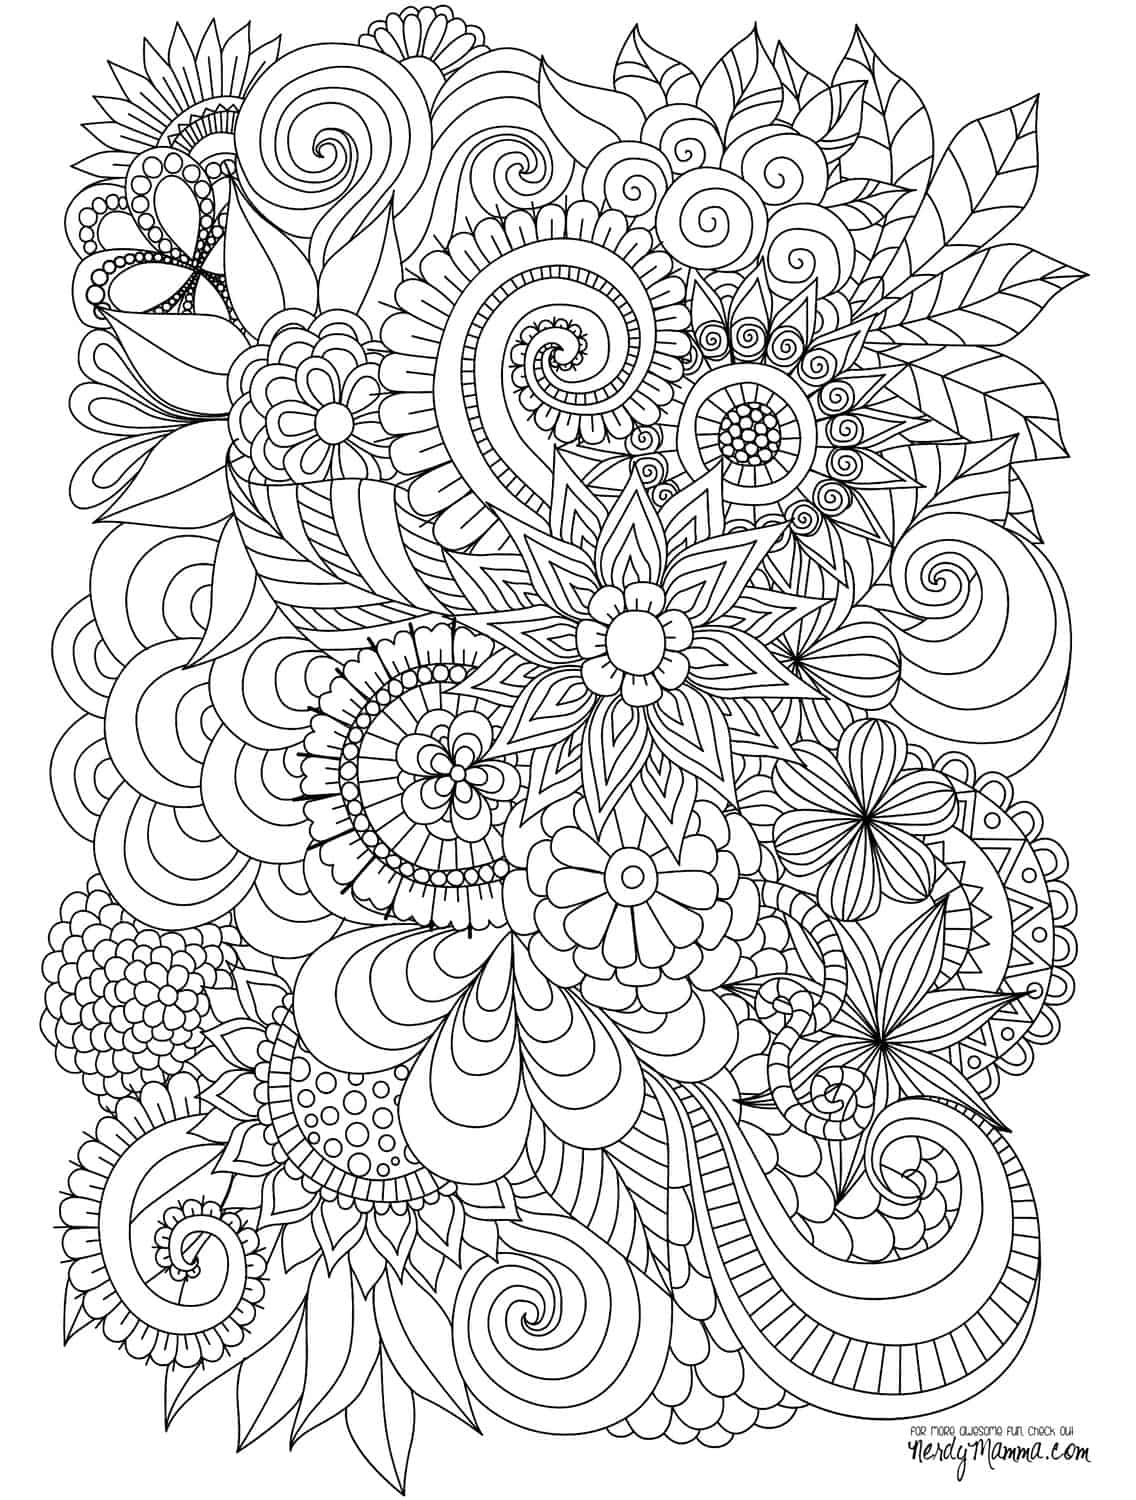 11 Free Printable Adult Coloring Pages – Printable Adult Coloring Page